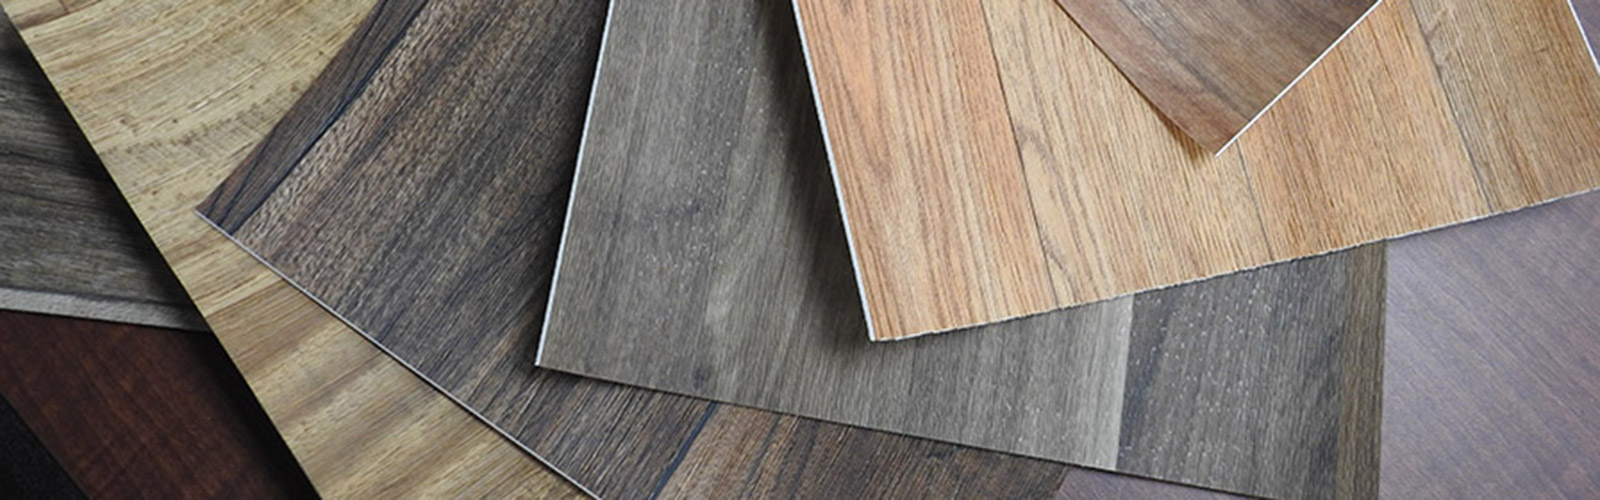 Vinyl | Trade Show & Event Flooring | High-Quality Flooring Solutions